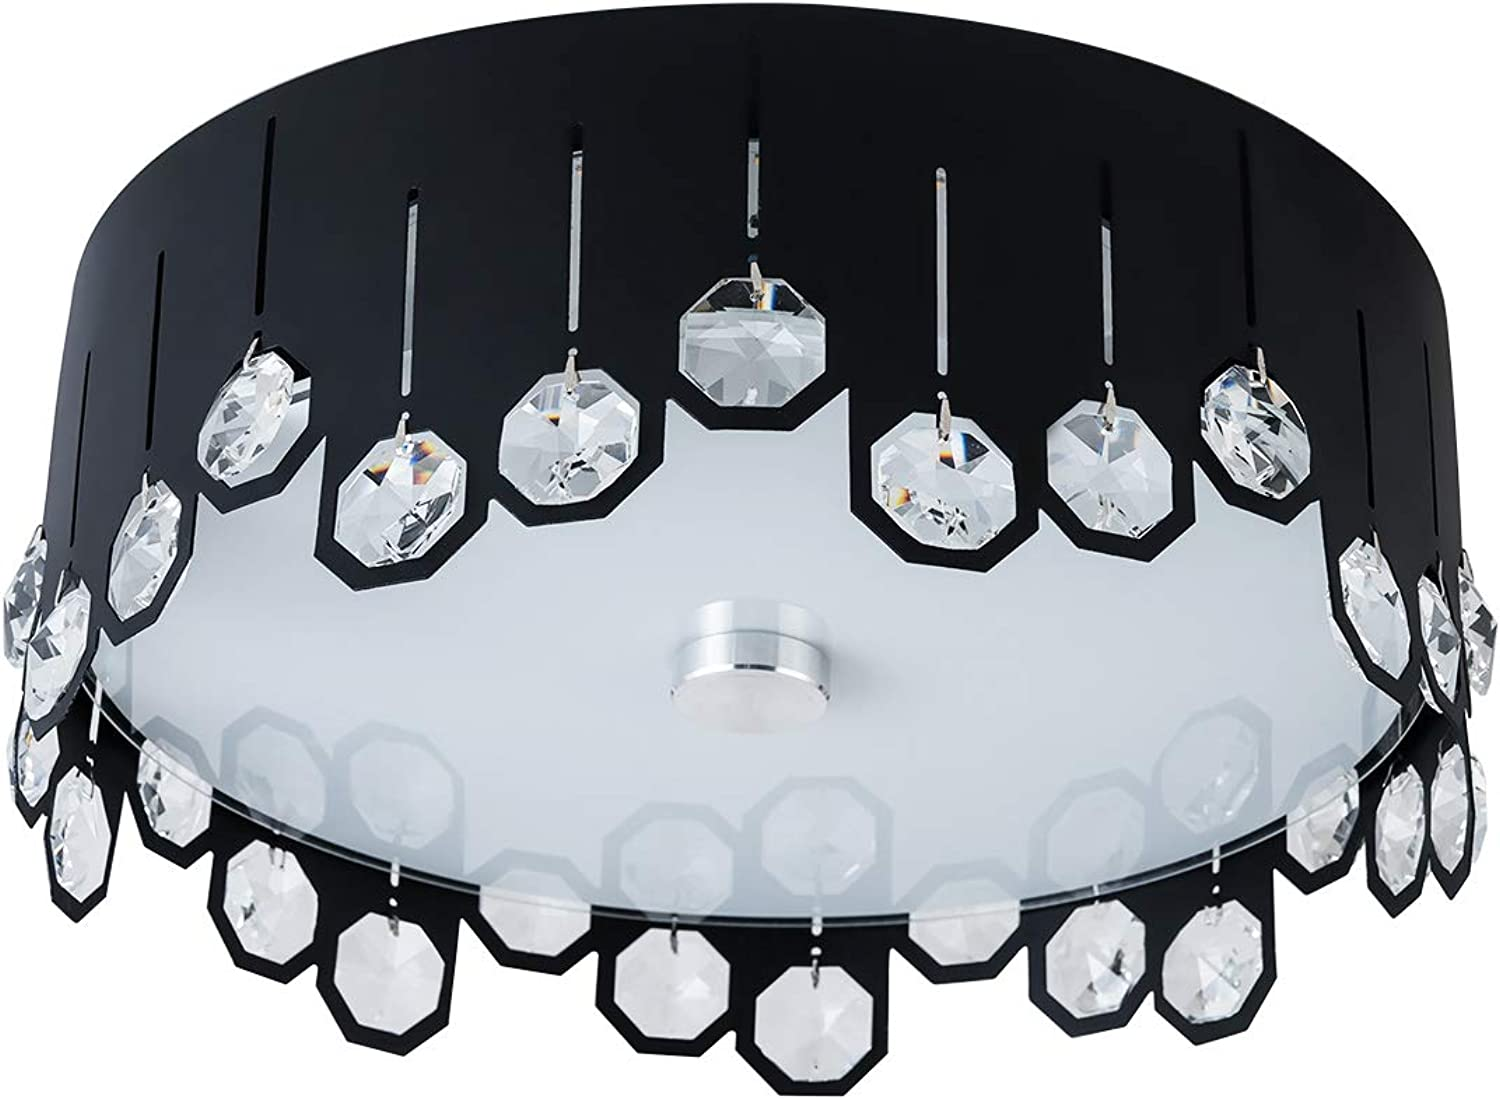 Lanros Crystal Flush Mount Ceiling Light, 13.8-inch Modern Simple Round LED Ceiling Light with 16W 3000K Warm White Apply to Bedroom, Dining Room, Living Room, Black & White